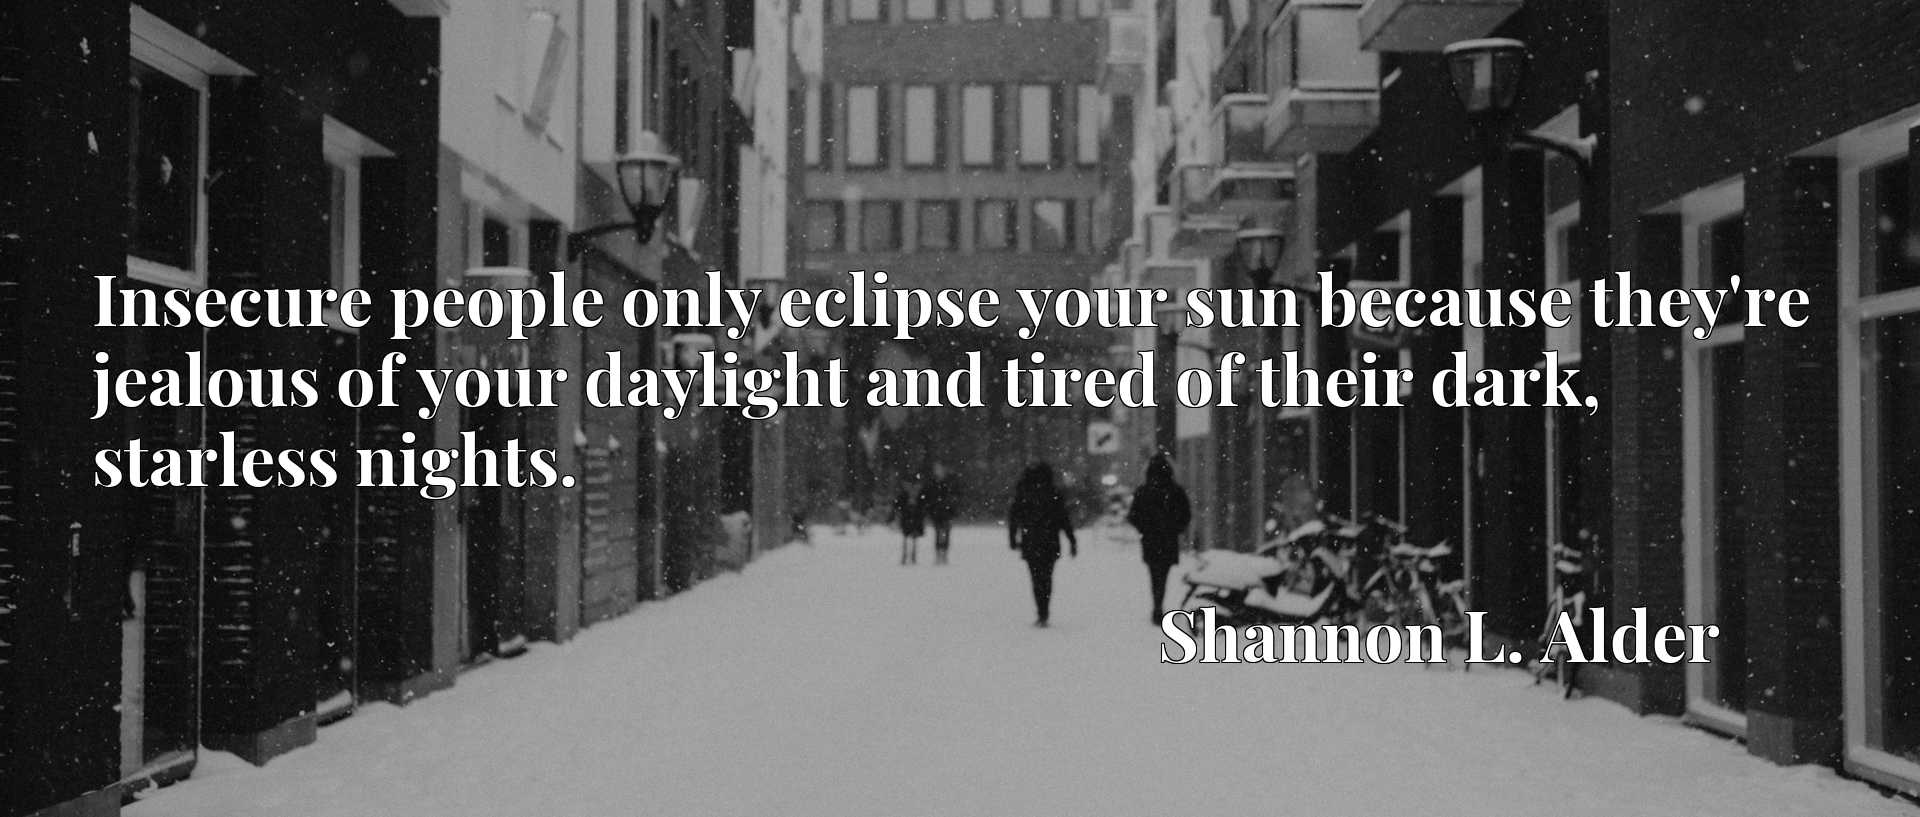 Quote Picture :Insecure people only eclipse your sun because they're jealous of your daylight and tired of their dark, starless nights.